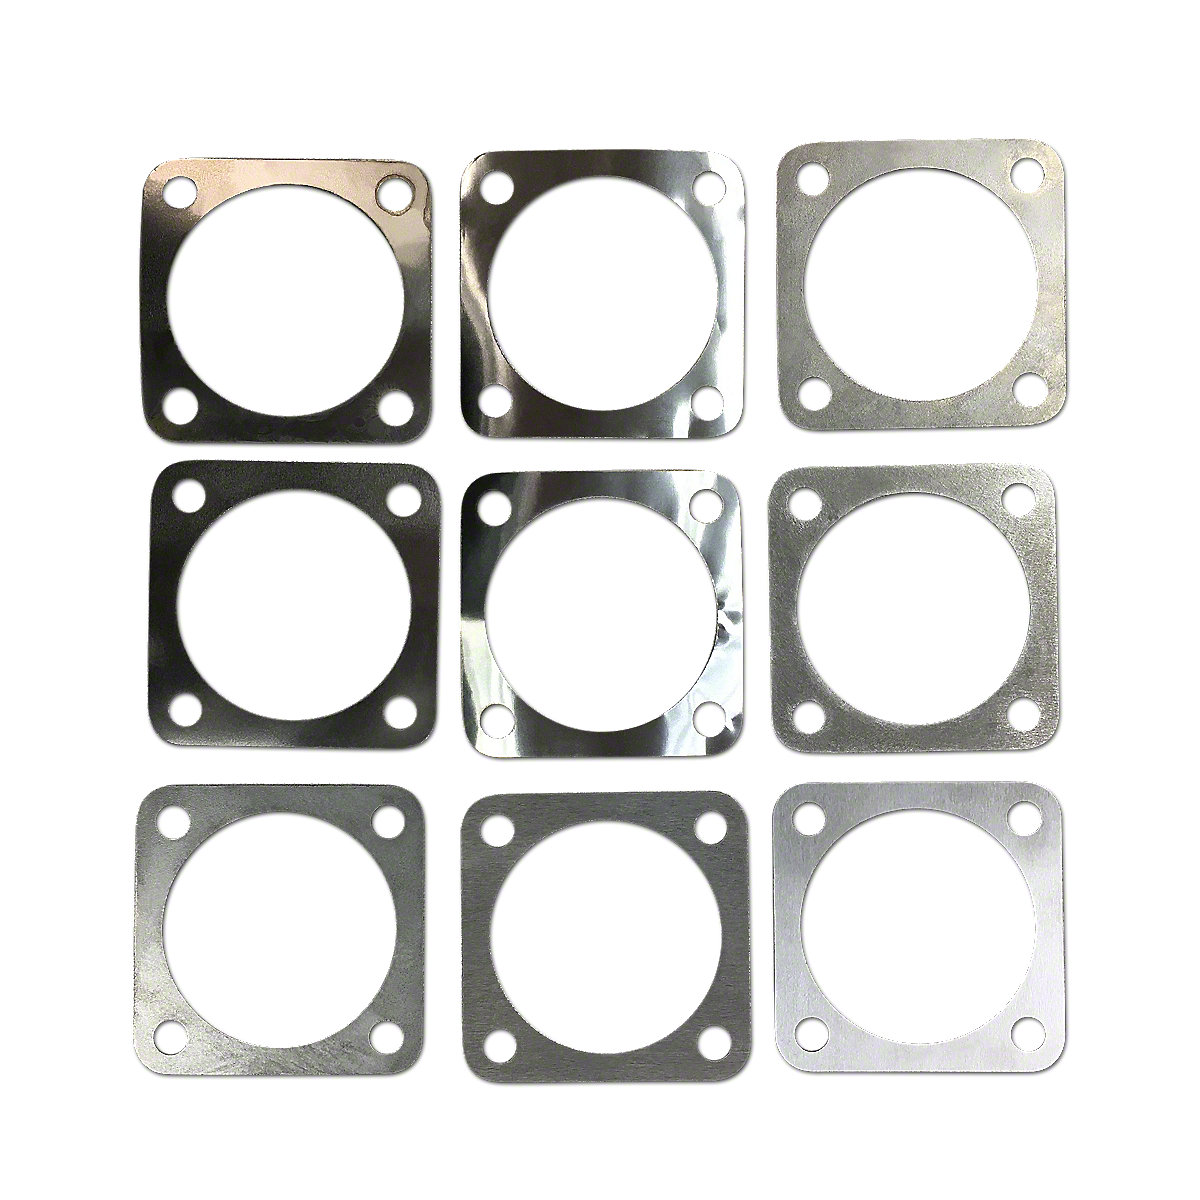 ABC3678 Steering Gear Box Shim Kit (9 pieces)